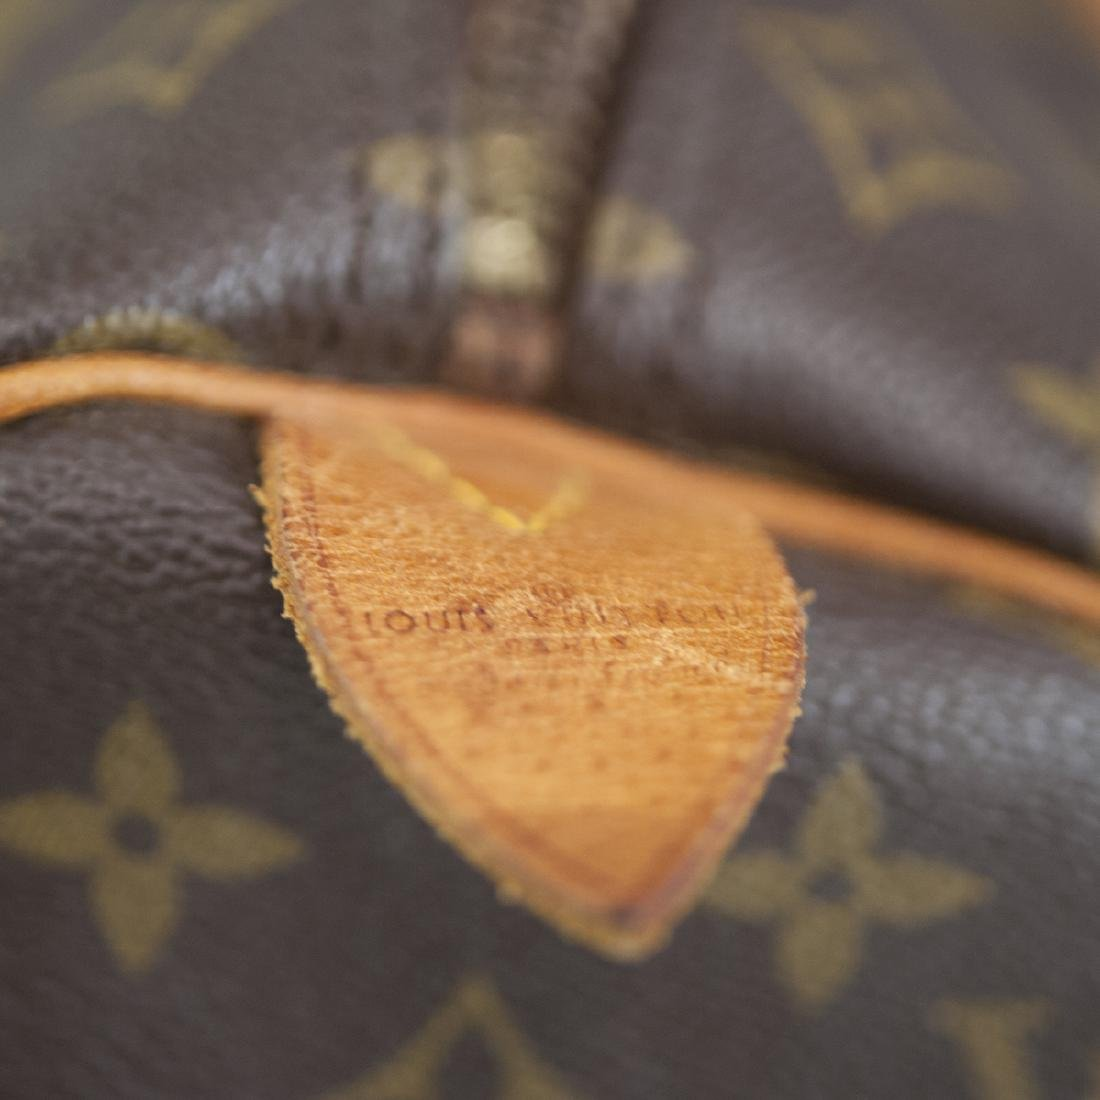 Louis Vuitton Canvas & Leather Keepall Bag - 5